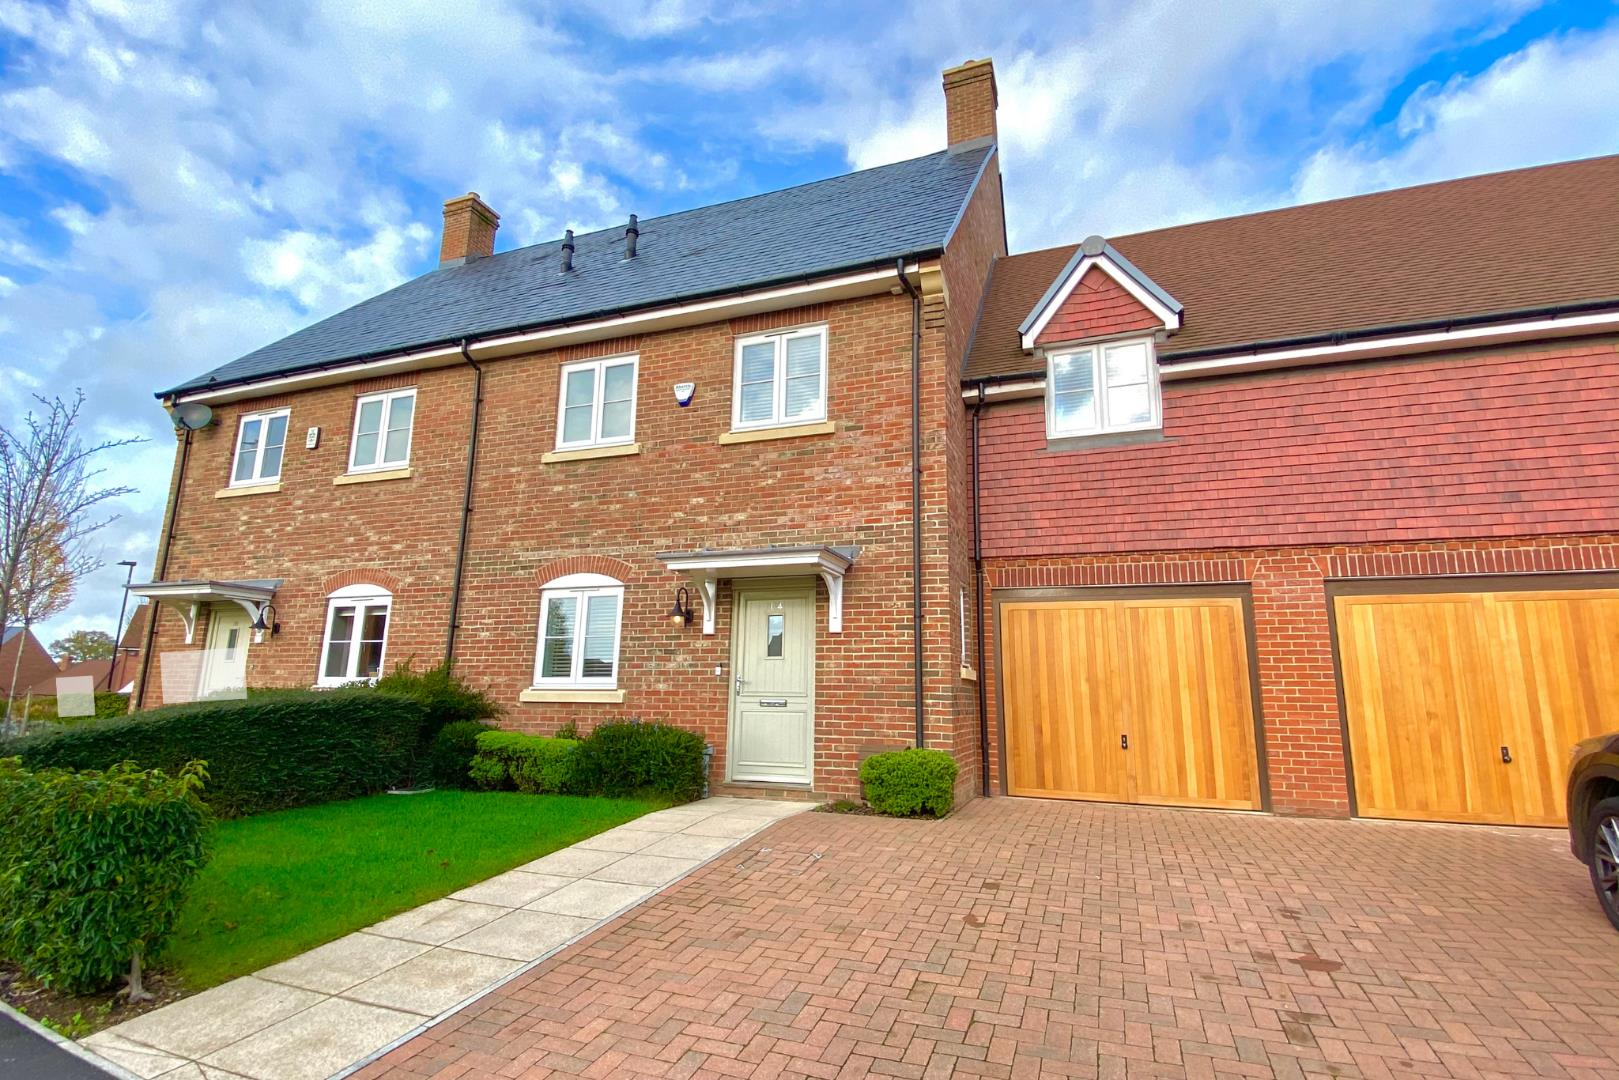 4 bed semi-detached for sale, RG42